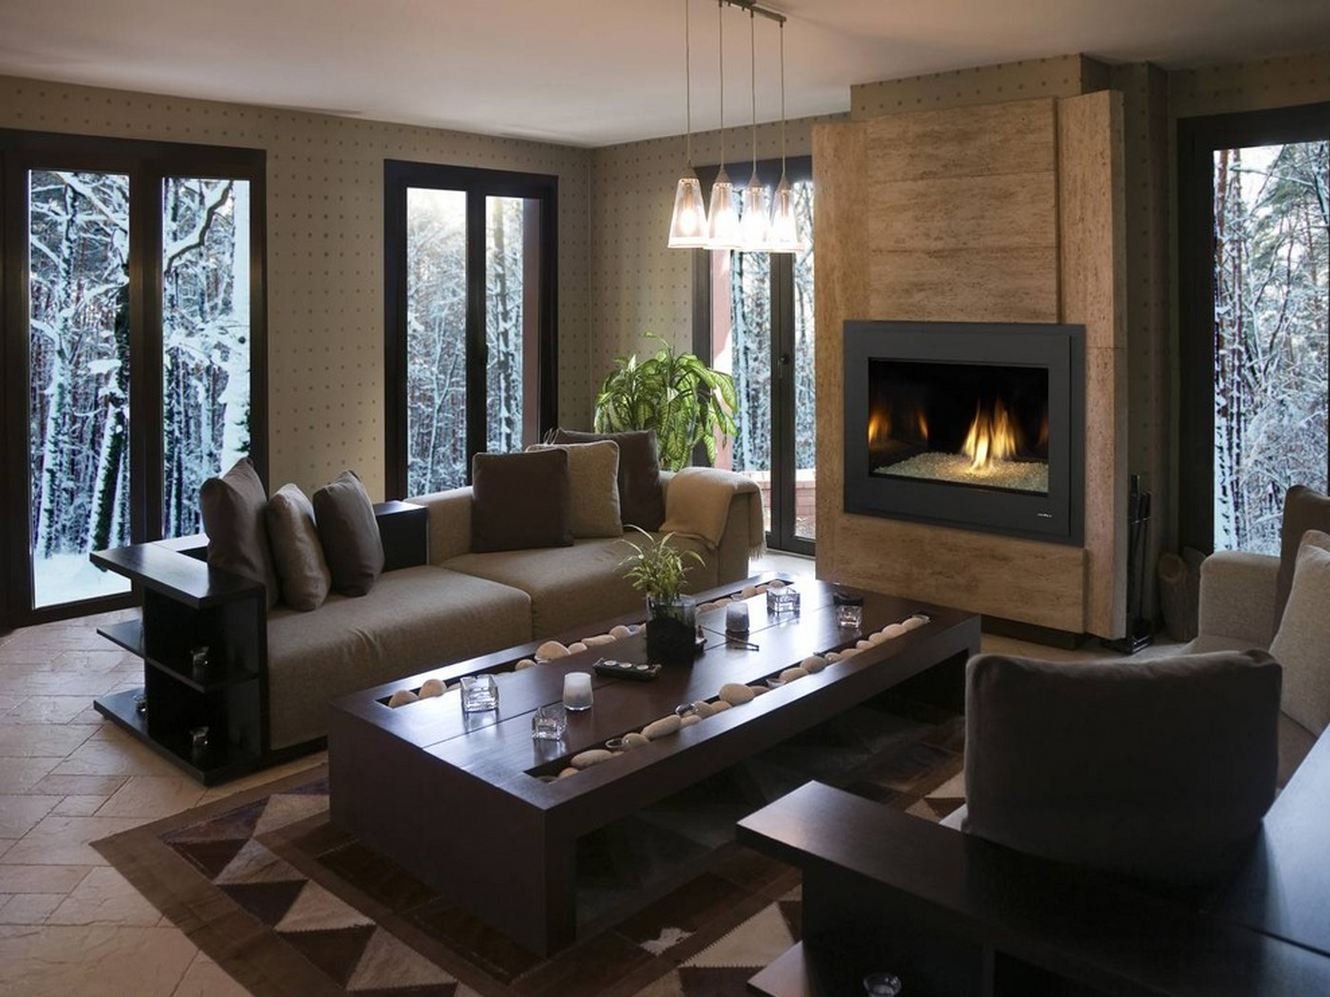 Charmant Lovely Design Of The Living Room Areas With Brown Wooden Mantels For Modern  Fireplace Ideas